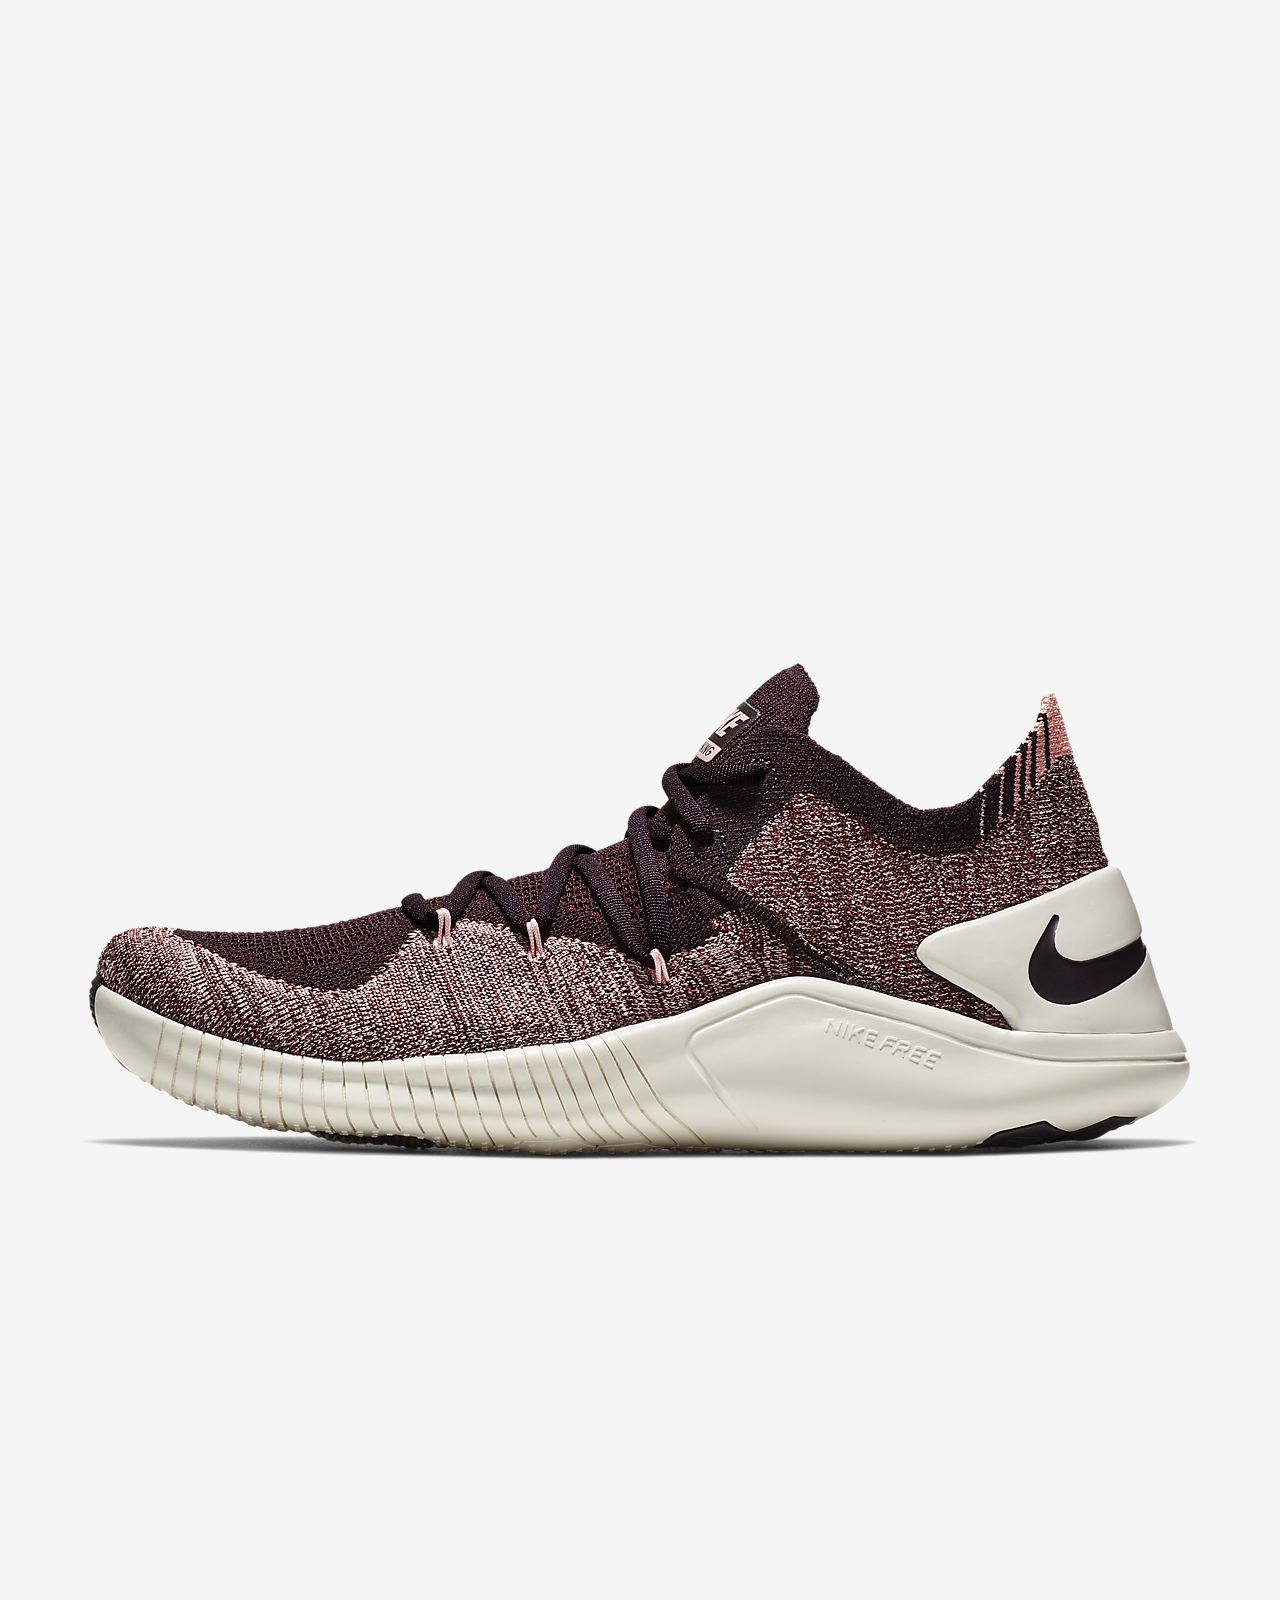 save off d4dec 0eced ... Nike Free TR Flyknit 3 Women s Gym HIIT Cross Training Shoe